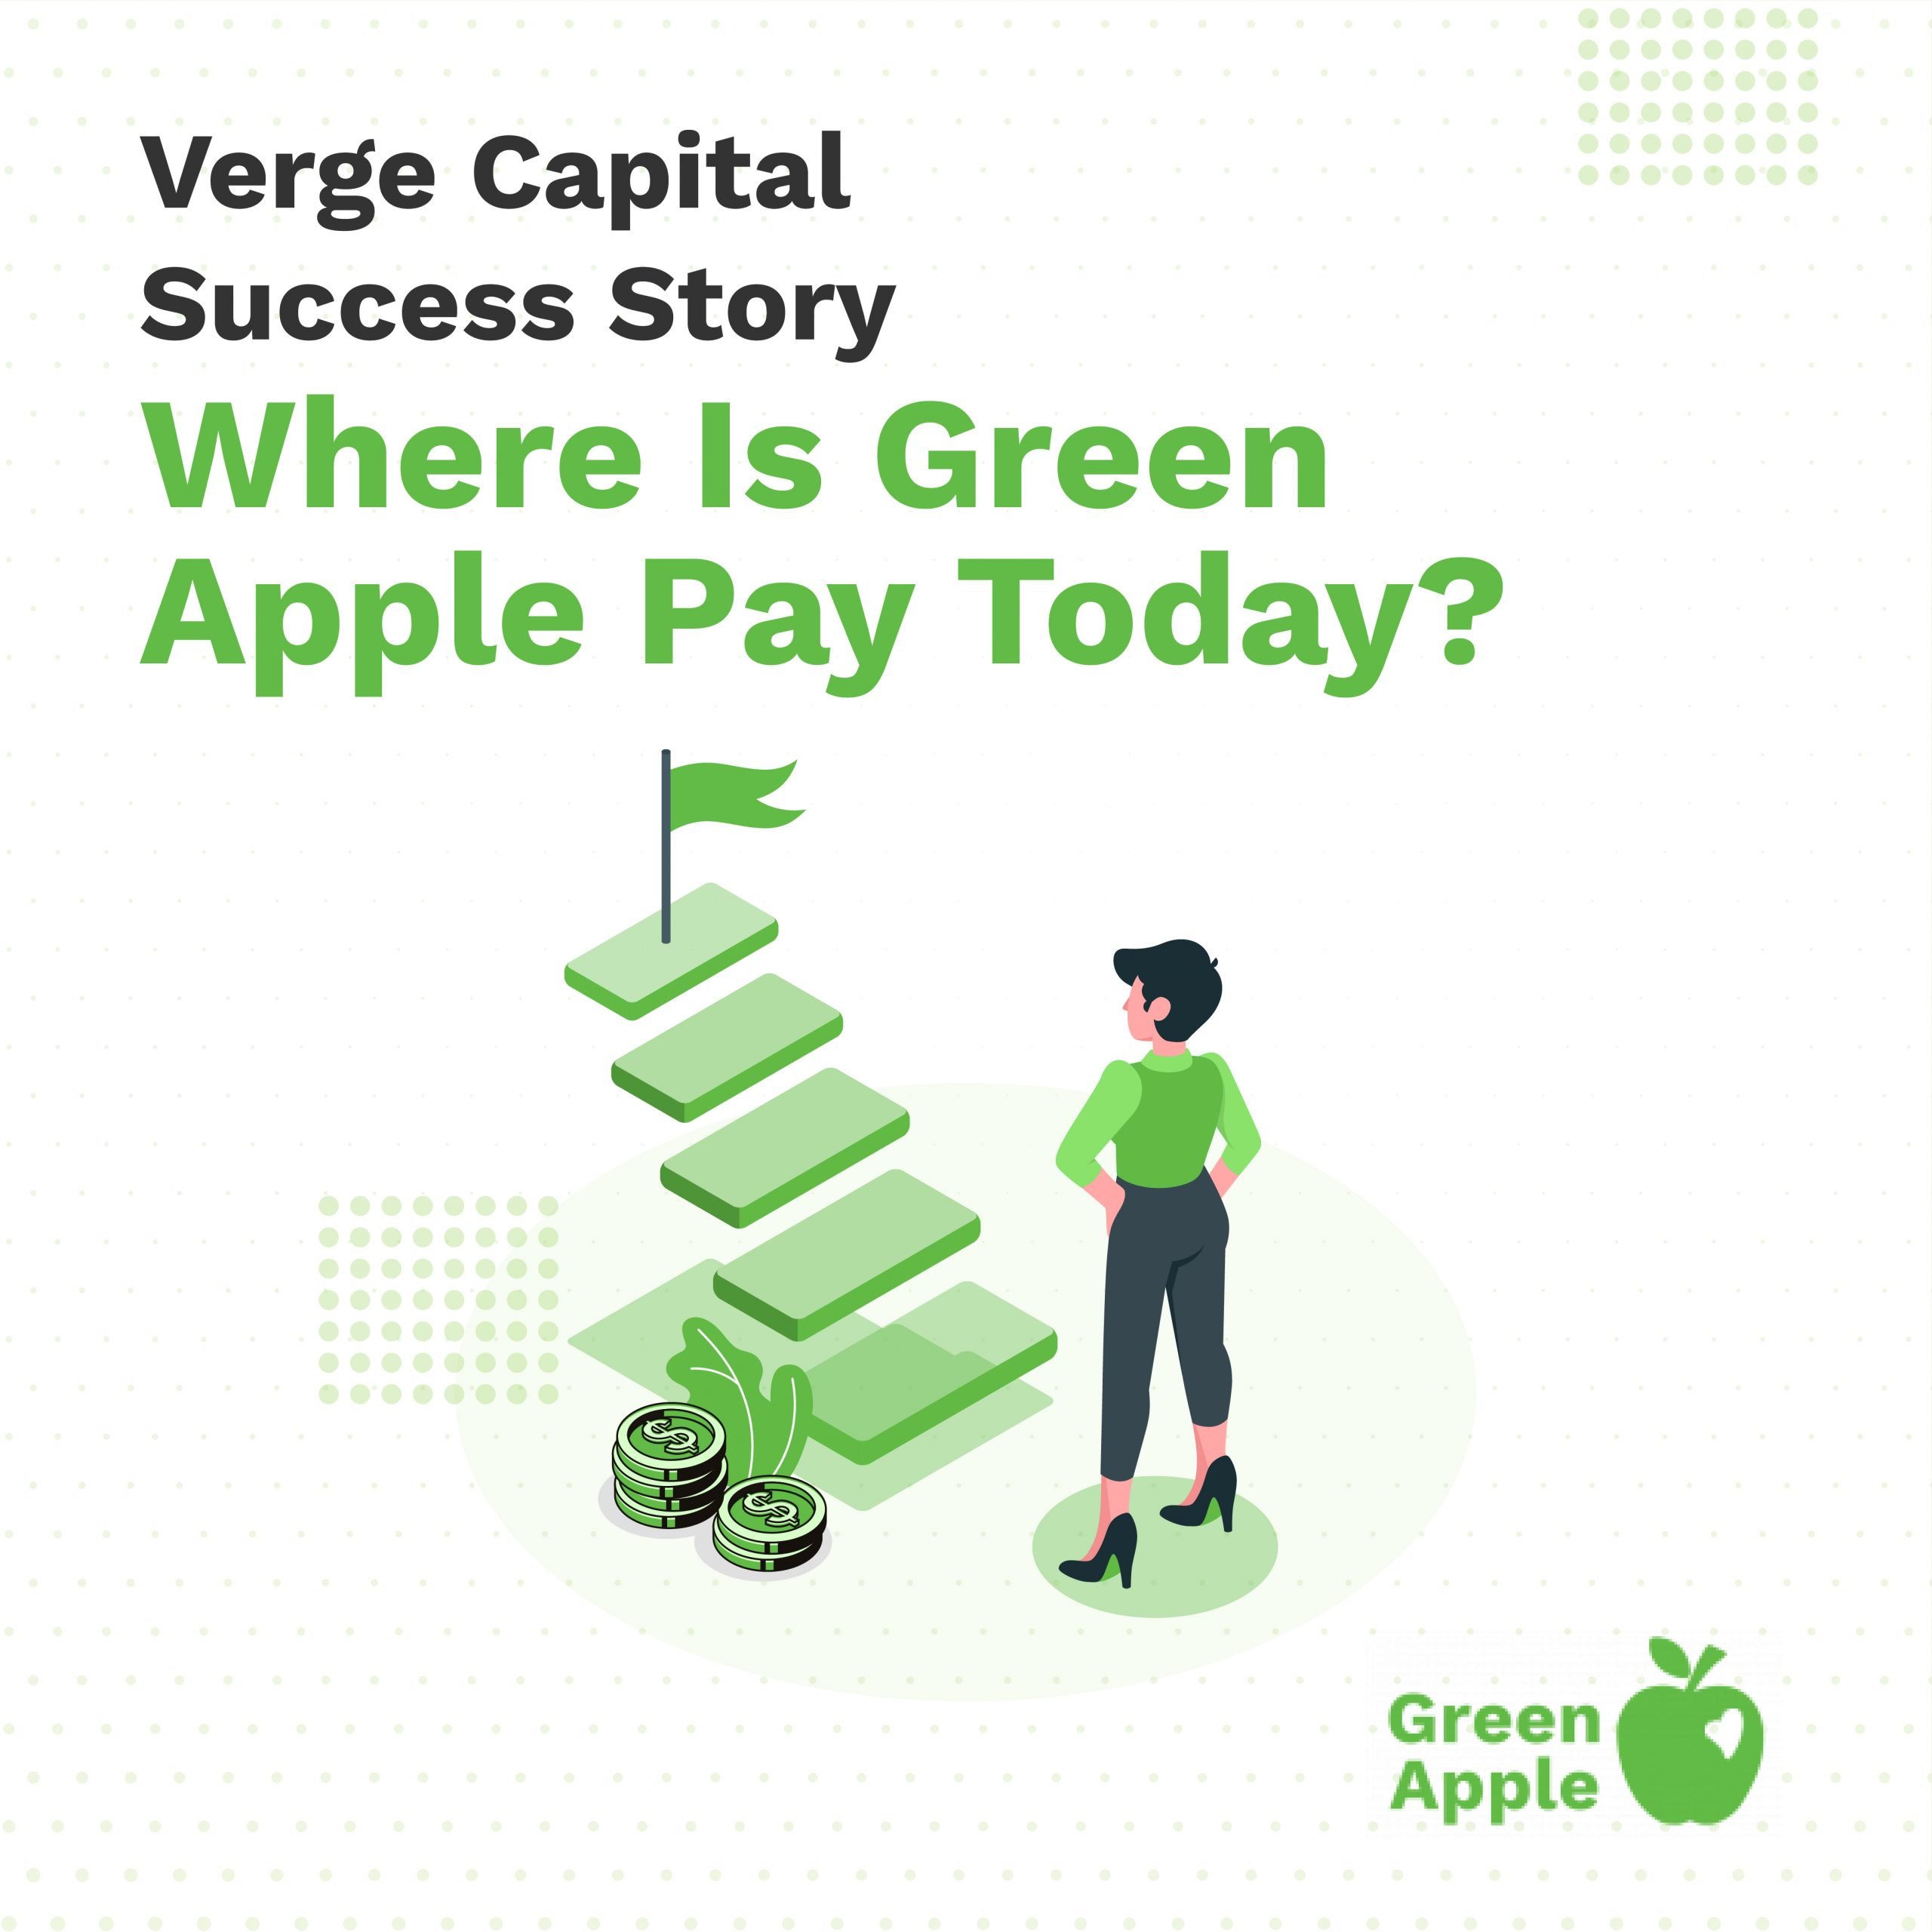 Verge Capital Success Story - Where is Green Apple Pay Today?